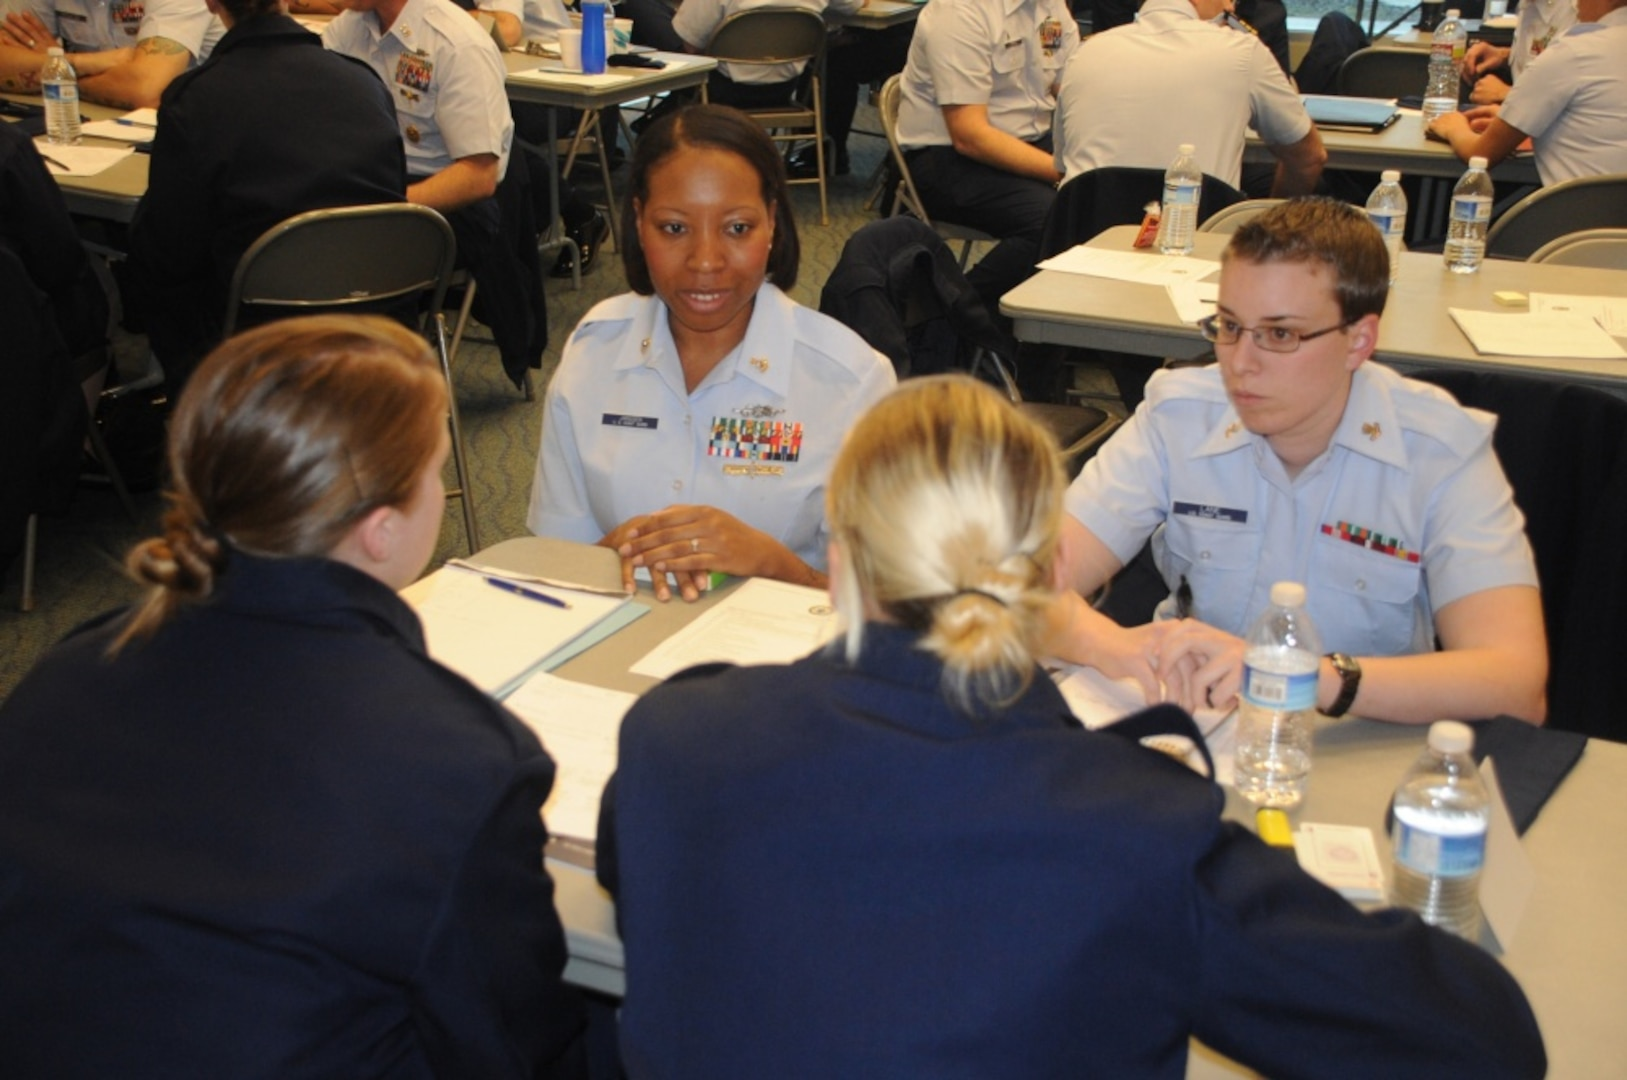 """Chief Petty Officer, Rekiya Janssen (top left) of the Naval Engineering Support Unit Maintenance Augmentation Team in Alameda, Calif., speaks with attendees of the """"Women in D13"""" workshop at the Columbia River Maritime Museum, Dec. 12, 2012, during a speed mentoring session. Guests to the event had a chance to meet with and learn from female Coast Guard members in senior leadership positions during the two-day workshop. Coast Guard photo by Petty Officer Shawn Eggert"""